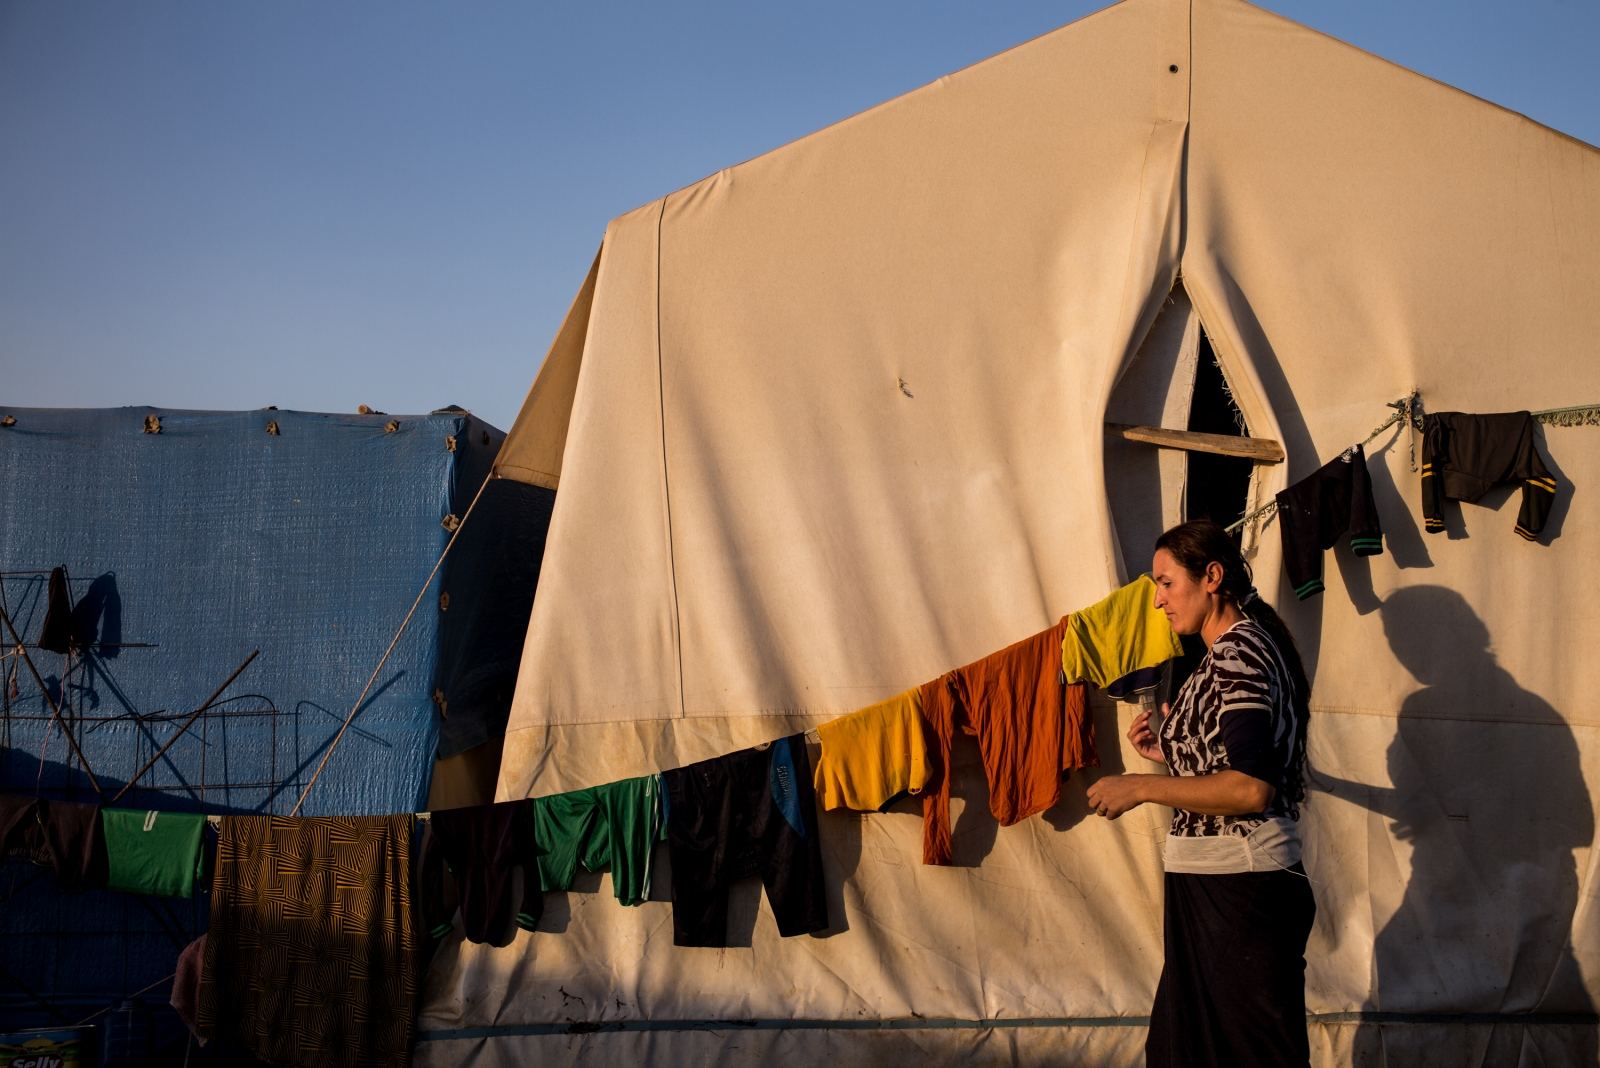 A Yazidi woman hangs laundry outside her tent at the Shariya camp for internally displaced persons near Dohuk in Kurdistan, Iraq, on Thursday, September 1, 2016. Shariya is host to nearly 19,000 Yazidis who fled from Sinjar two years ago during the ISIS onslaught.